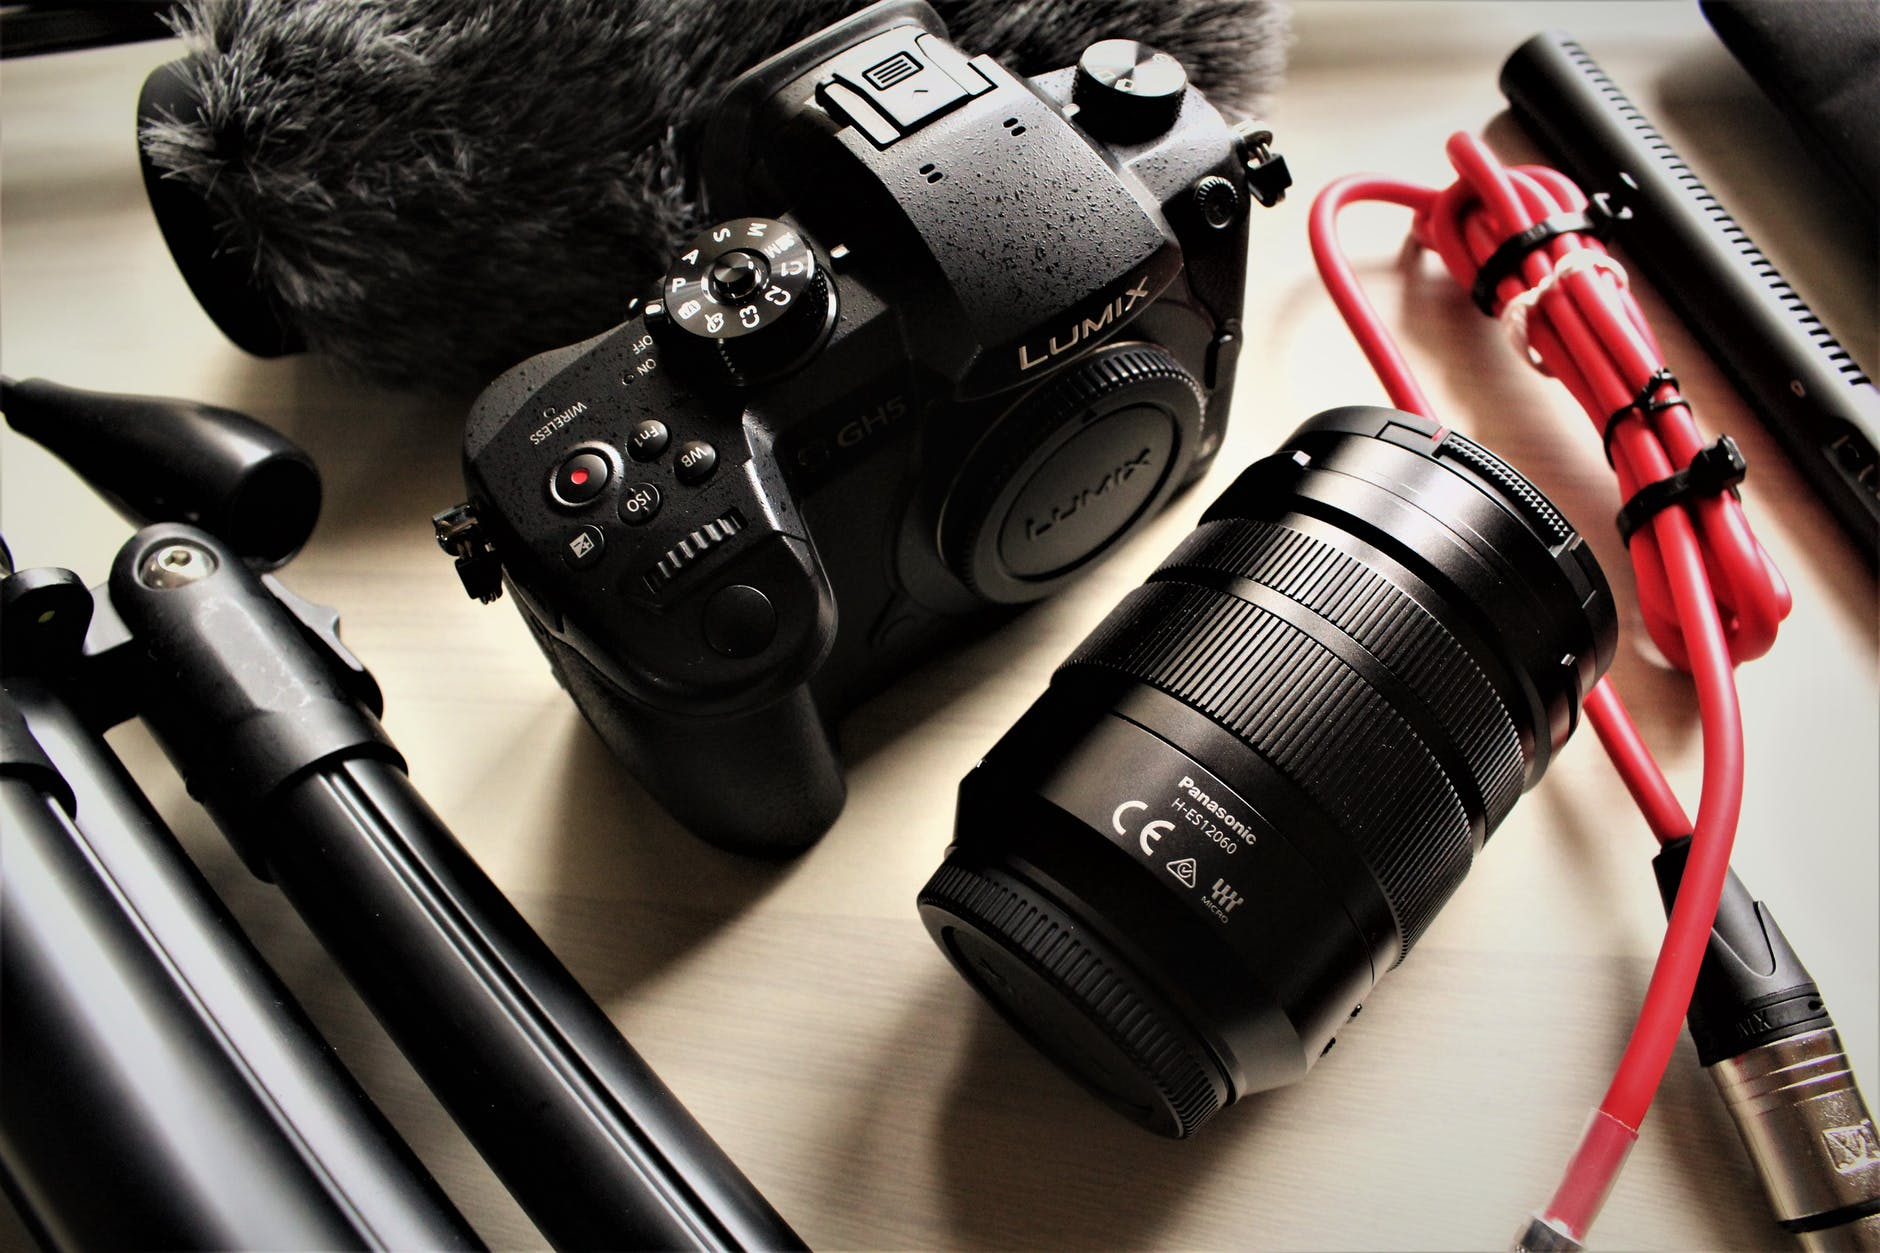 Panasonic Lumix GH5 and GH5s Camera Equipment and Accessories